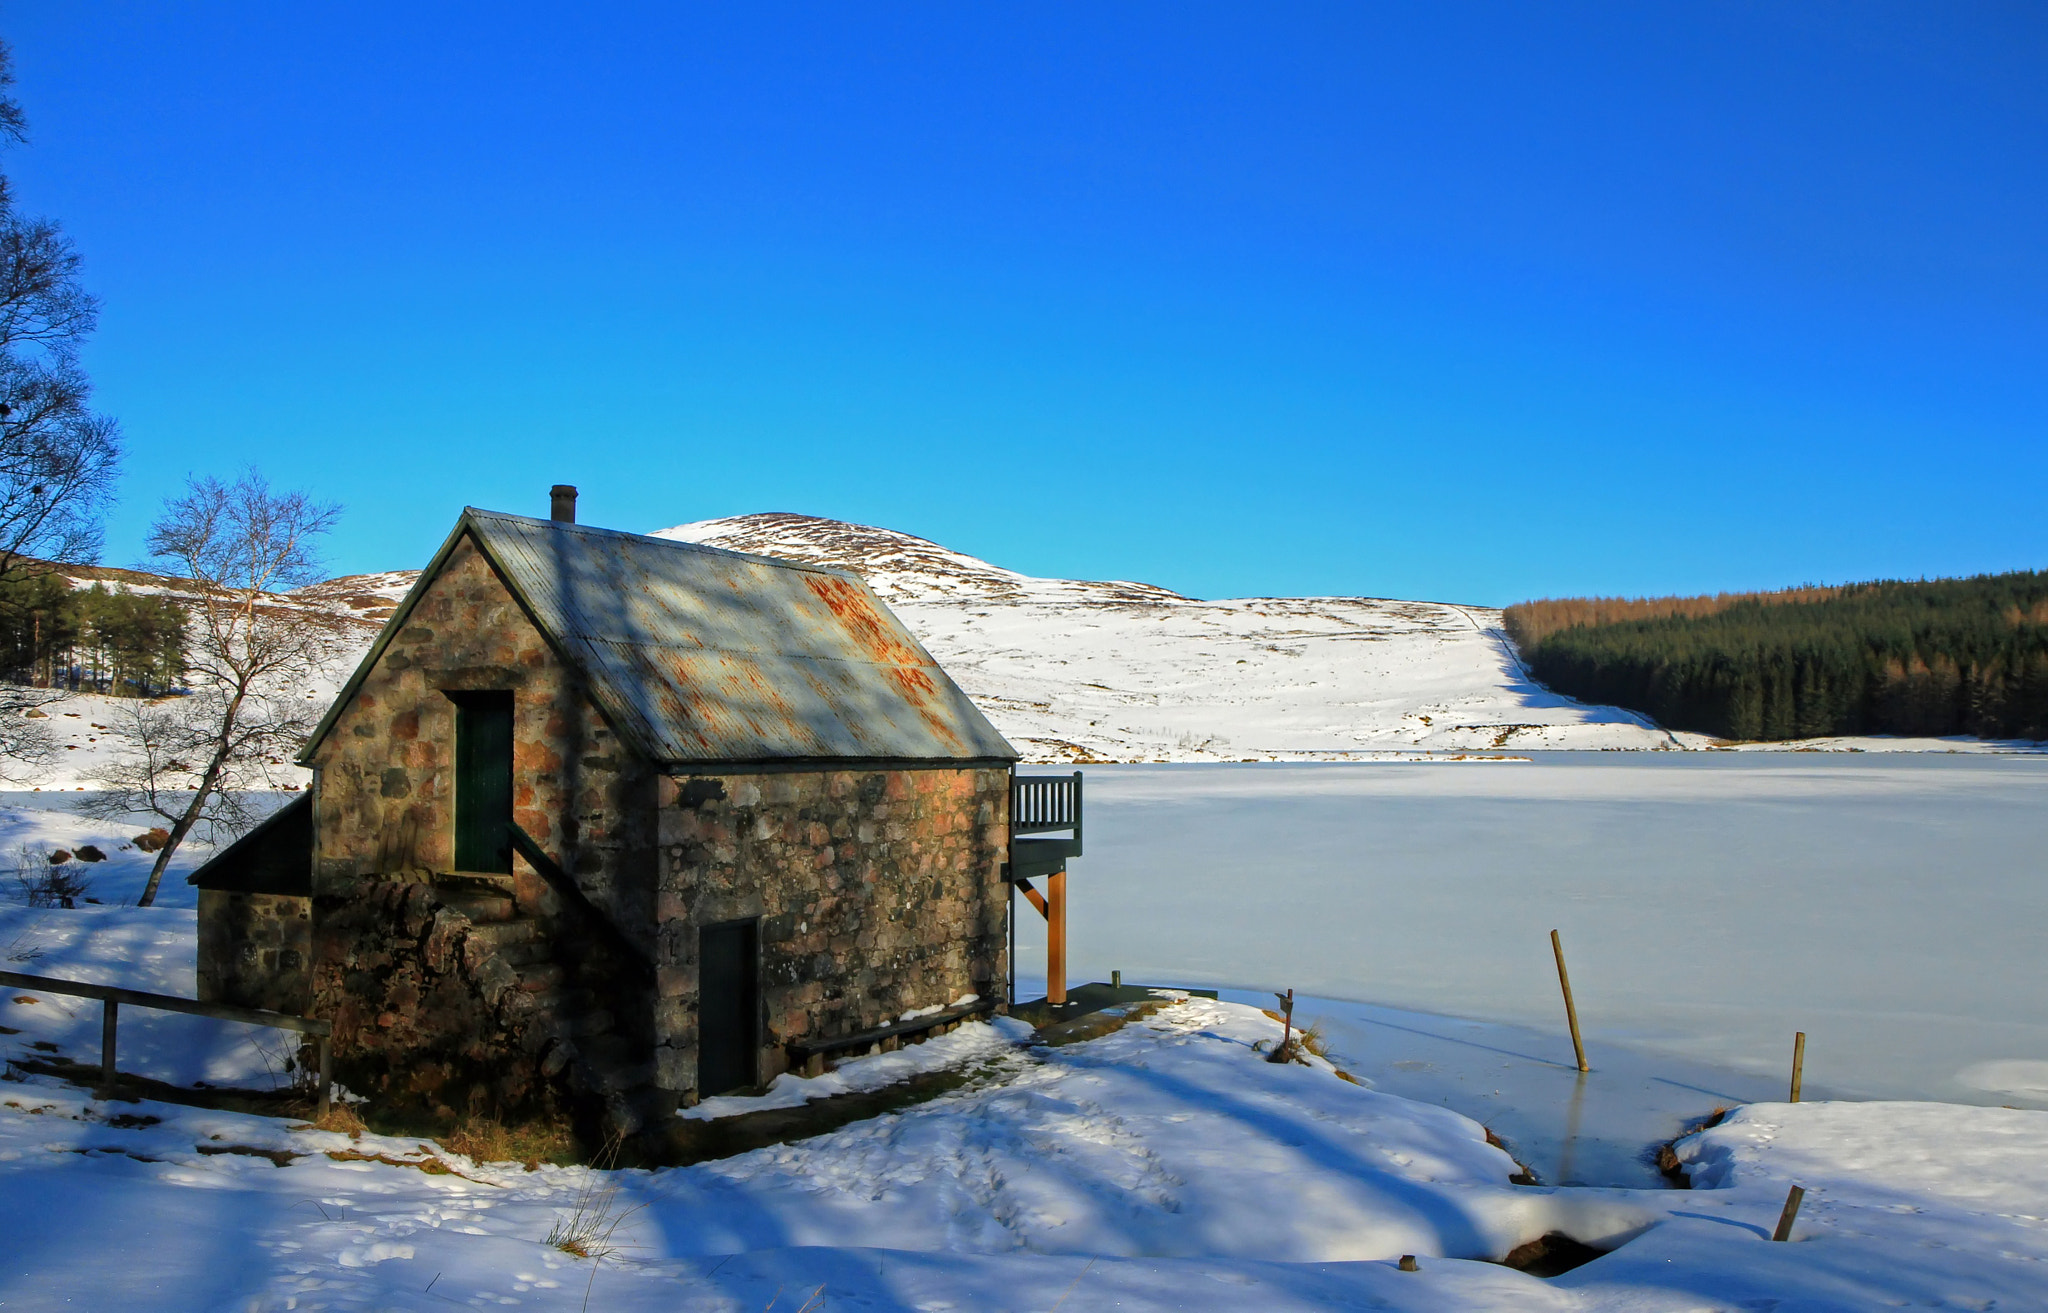 Photograph Loch Achentaple Frozen Over by Hilda Murray on 500px